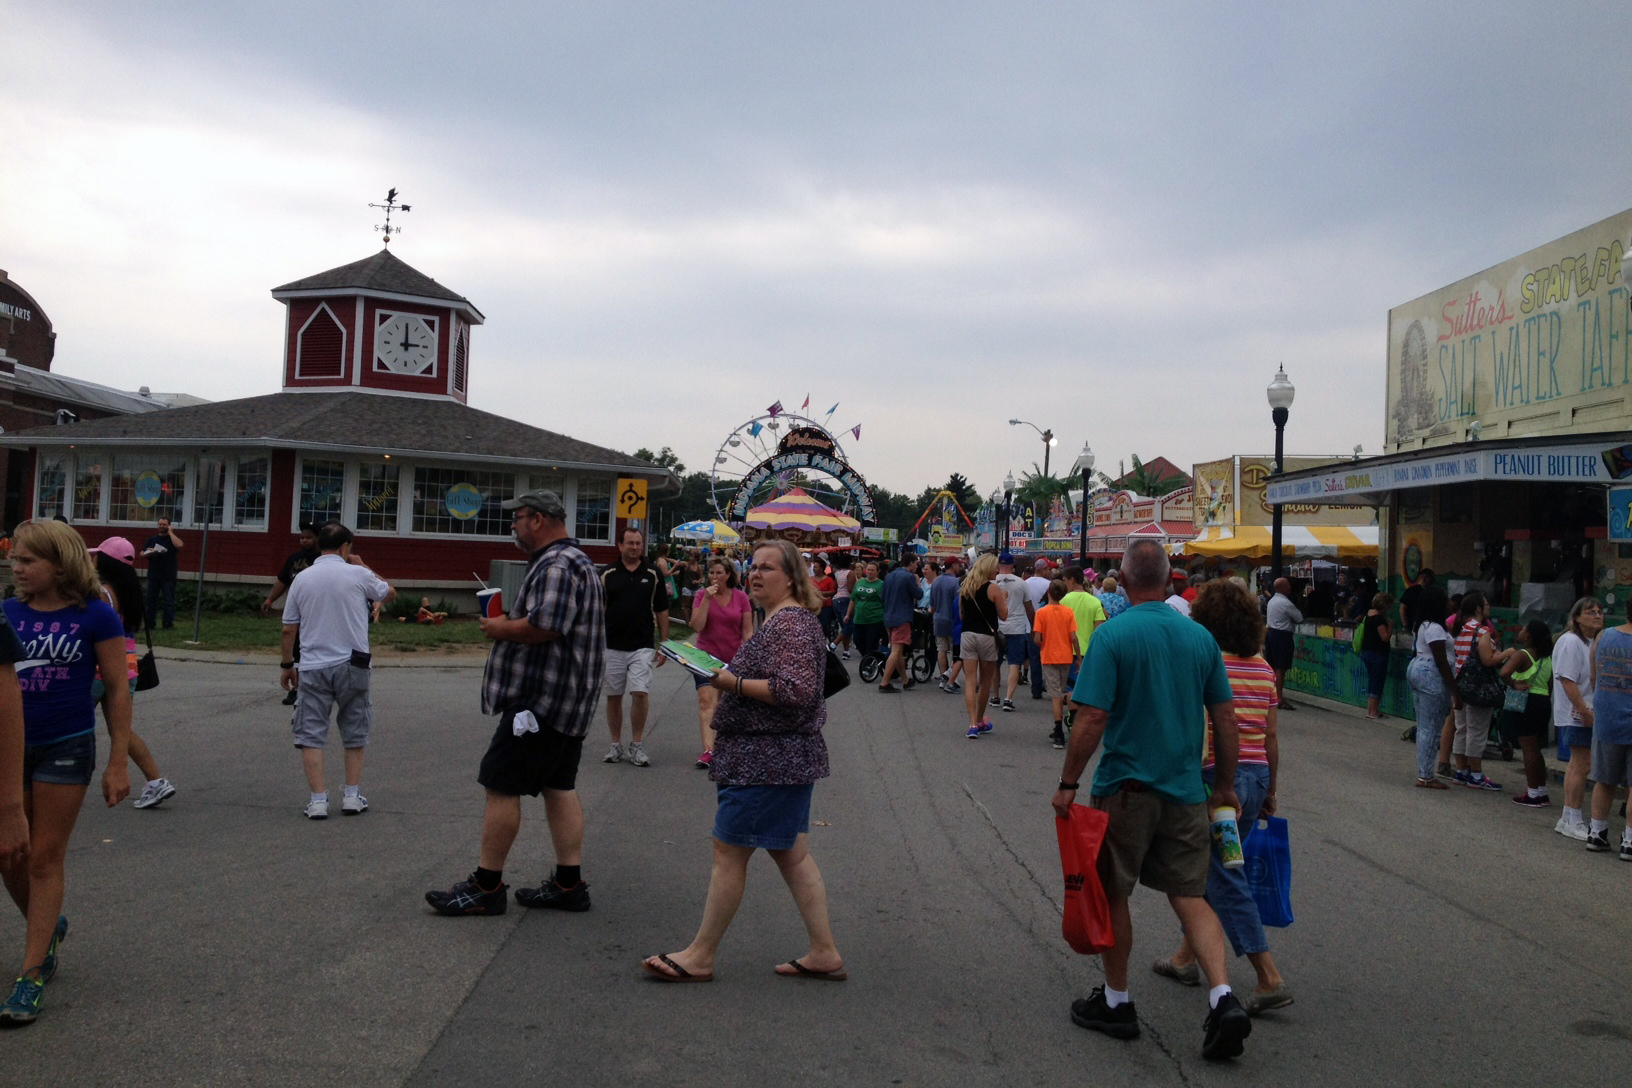 attendees at Indiana State Fair